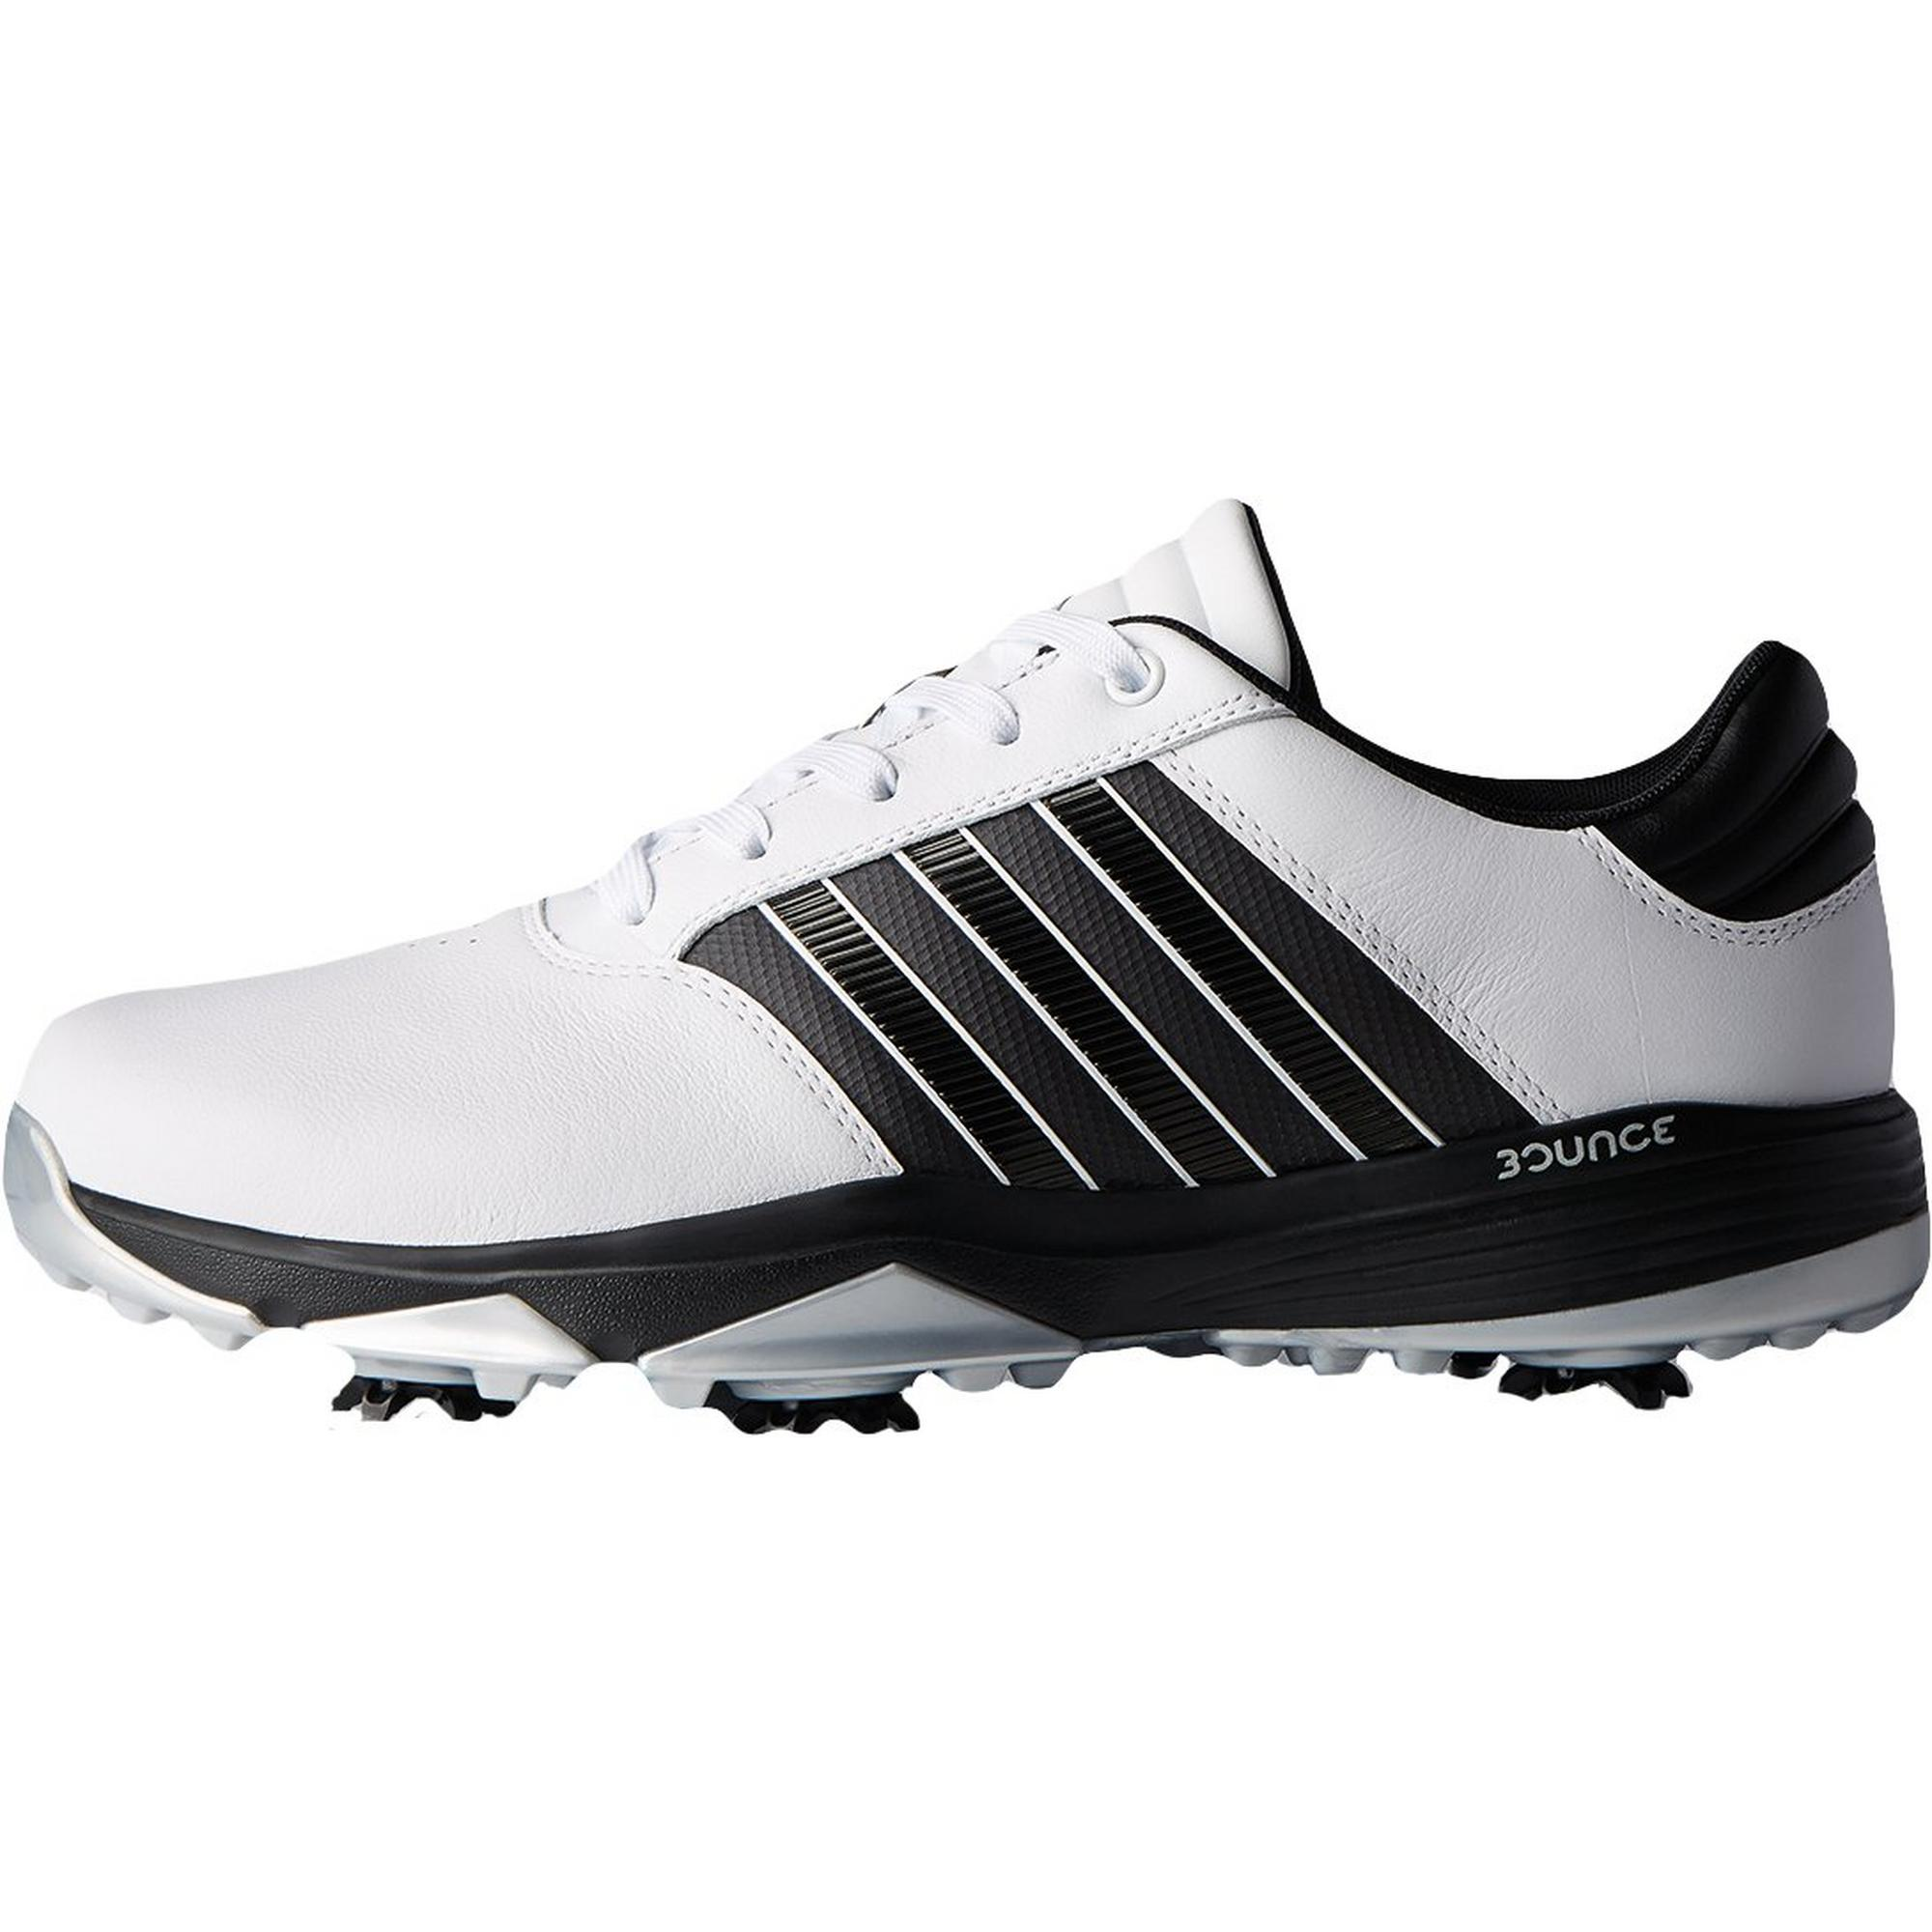 Men's 360 Bounce Spiked Golf Shoe - White